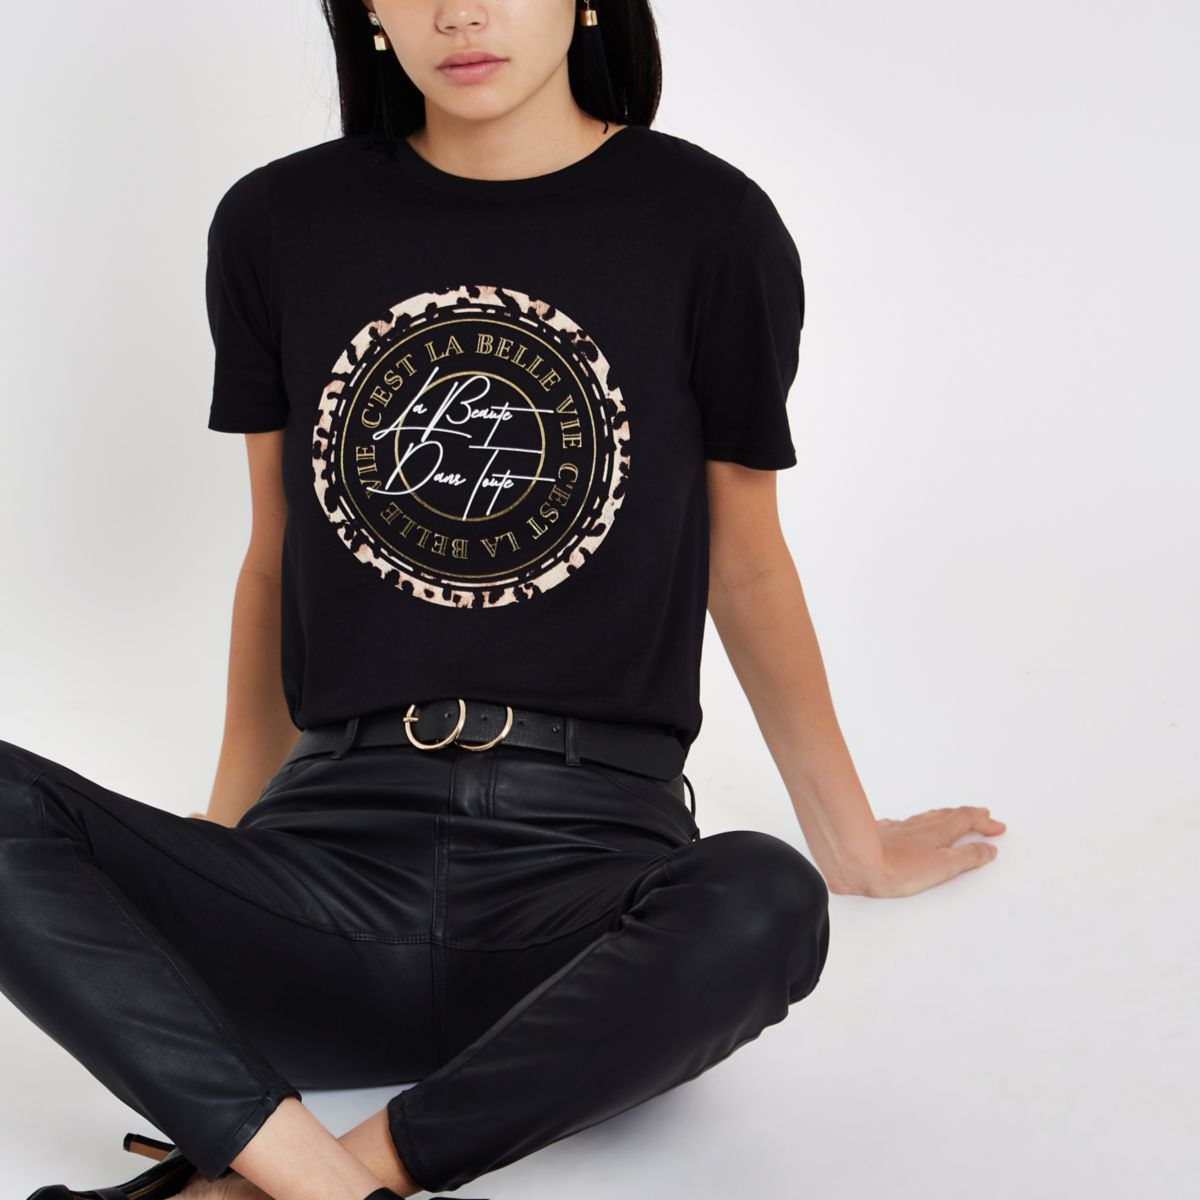 Black 'C'est la belle' circle print T-shirt